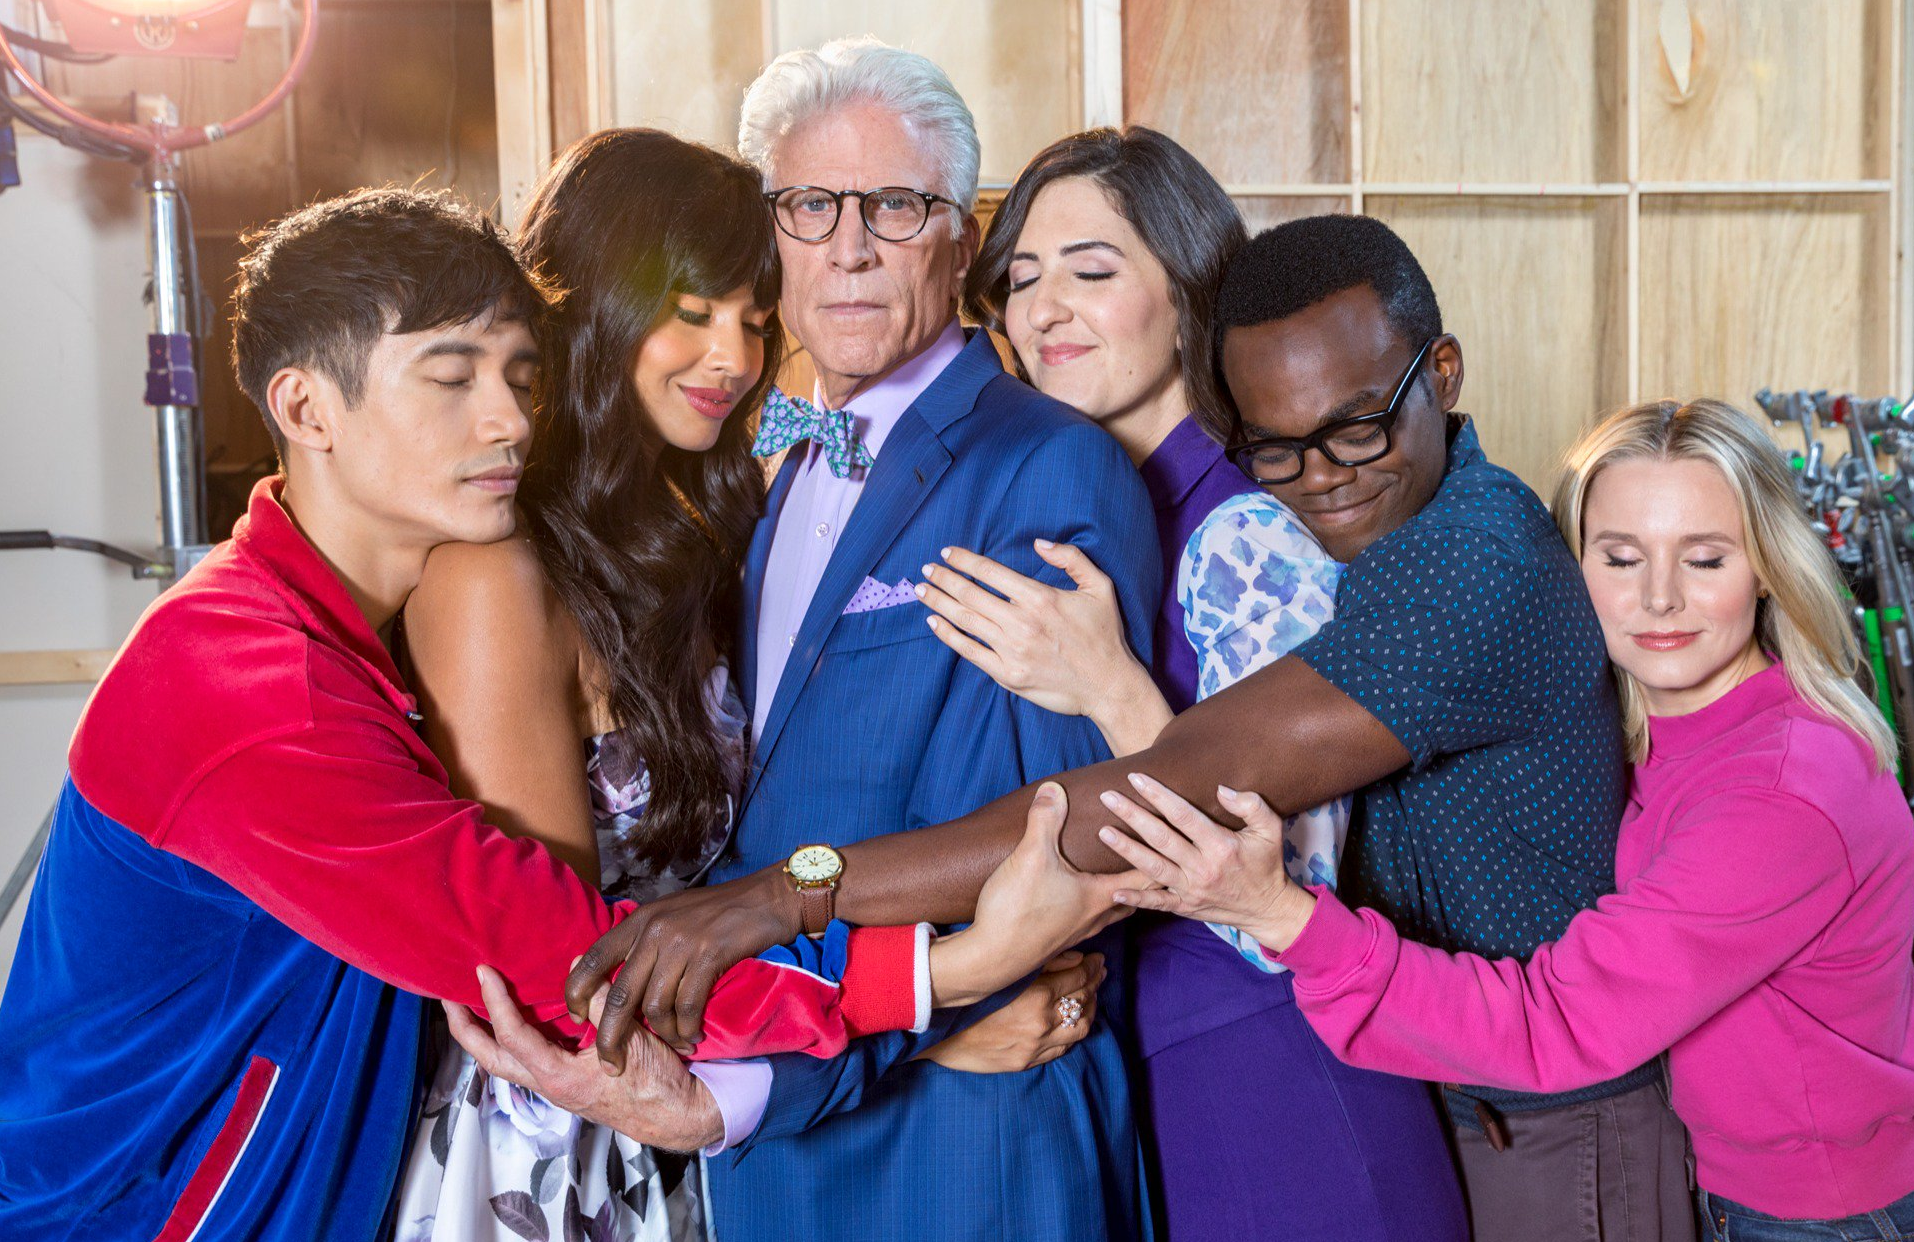 Manny Jacinto, Jameela Jamil, Ted Danson, D'Arcy Carden, William Jackson Harper and Kristen Bell in a promotional image for The Good Place. (Andrew Eccles/NBC)